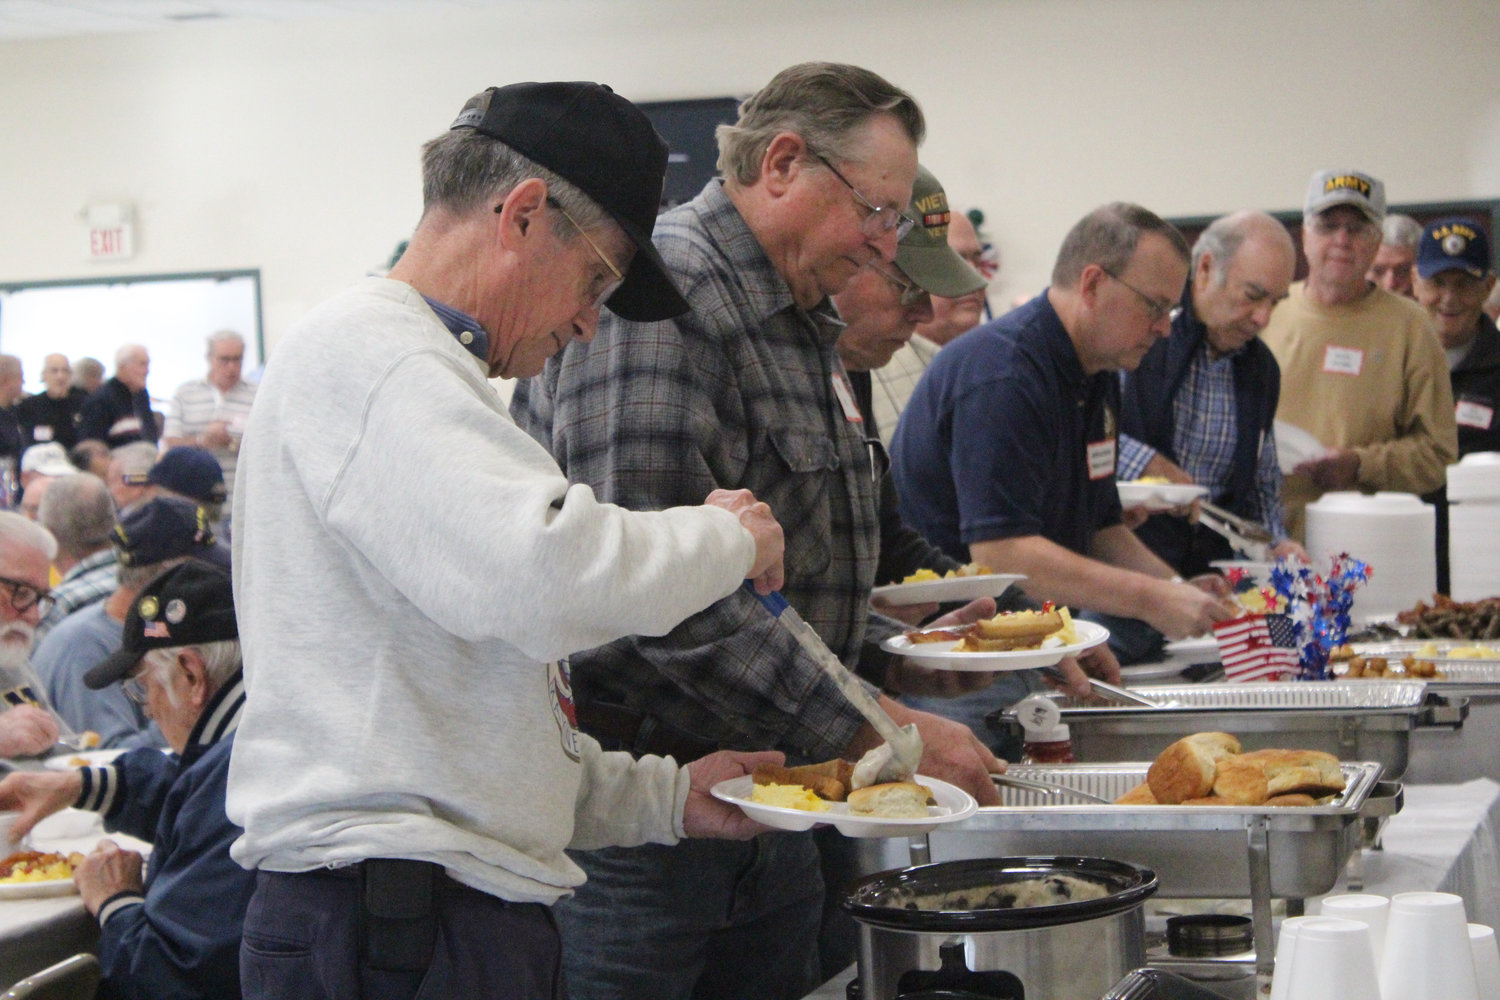 Marine Corps and National Guard veteran Larry Smith gets food during Rep. Tom Mehaffie's Veterans Breakfast at the Lower Swatara Fire Hall Nov. 8.